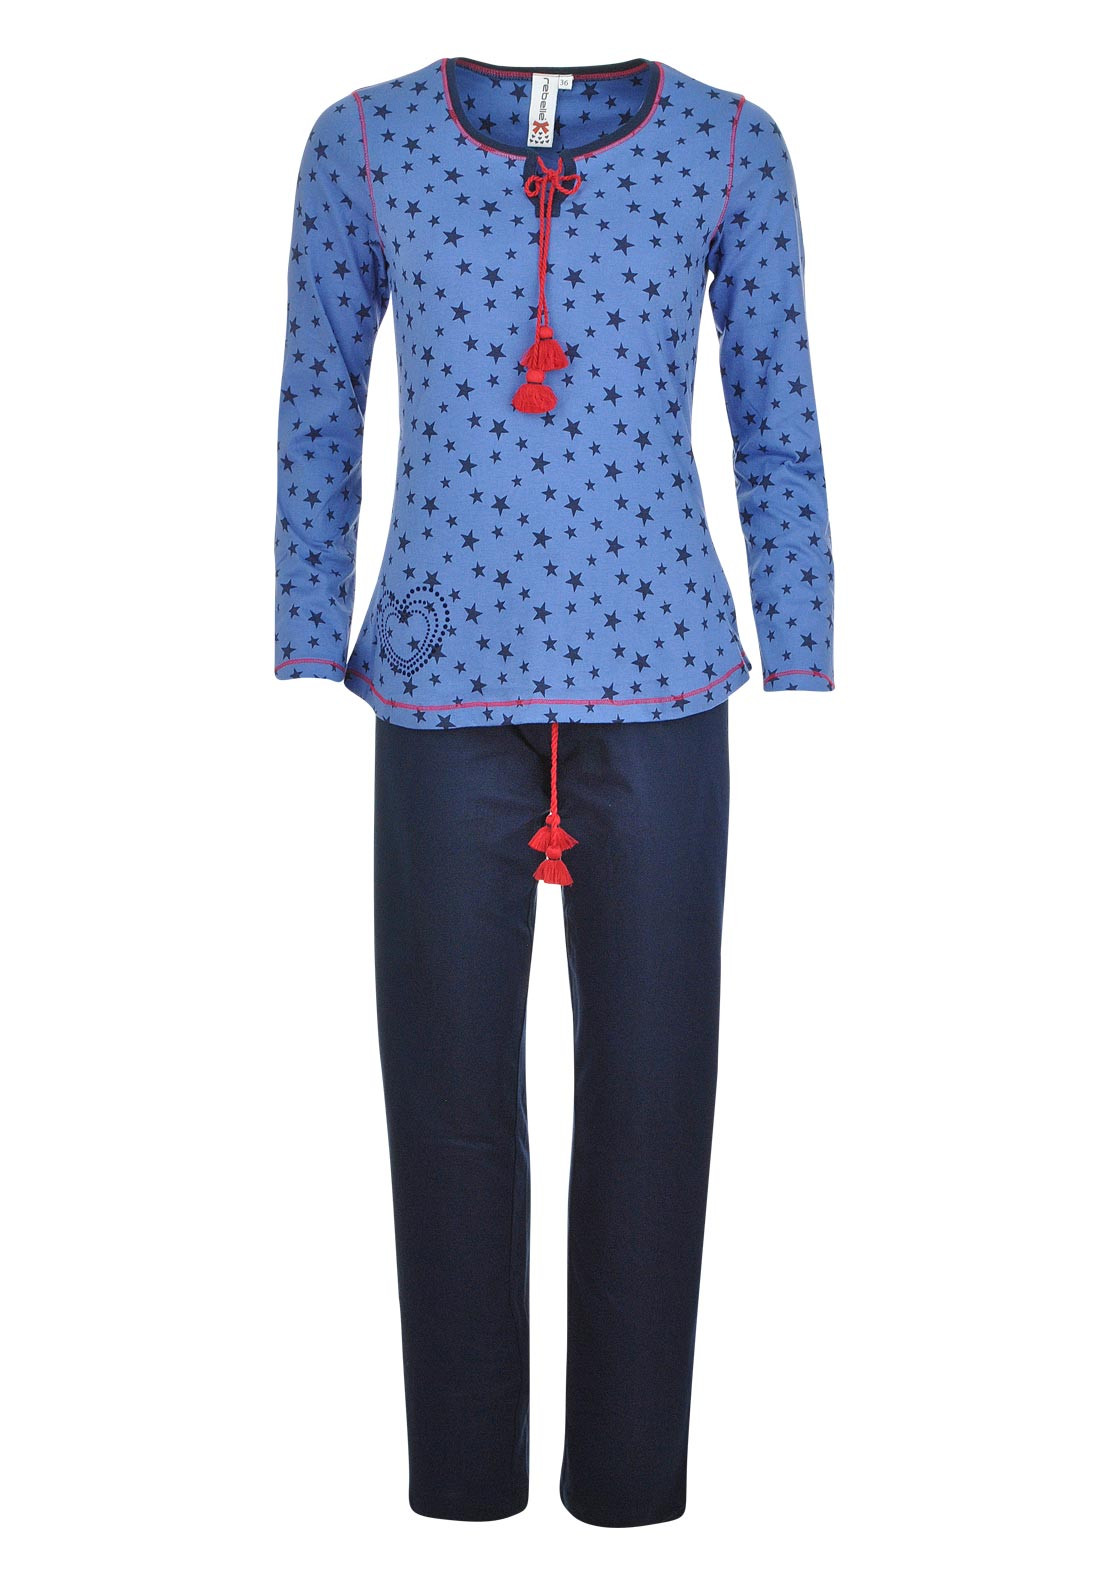 Rebelle Star Print Pyjama Set, Blue